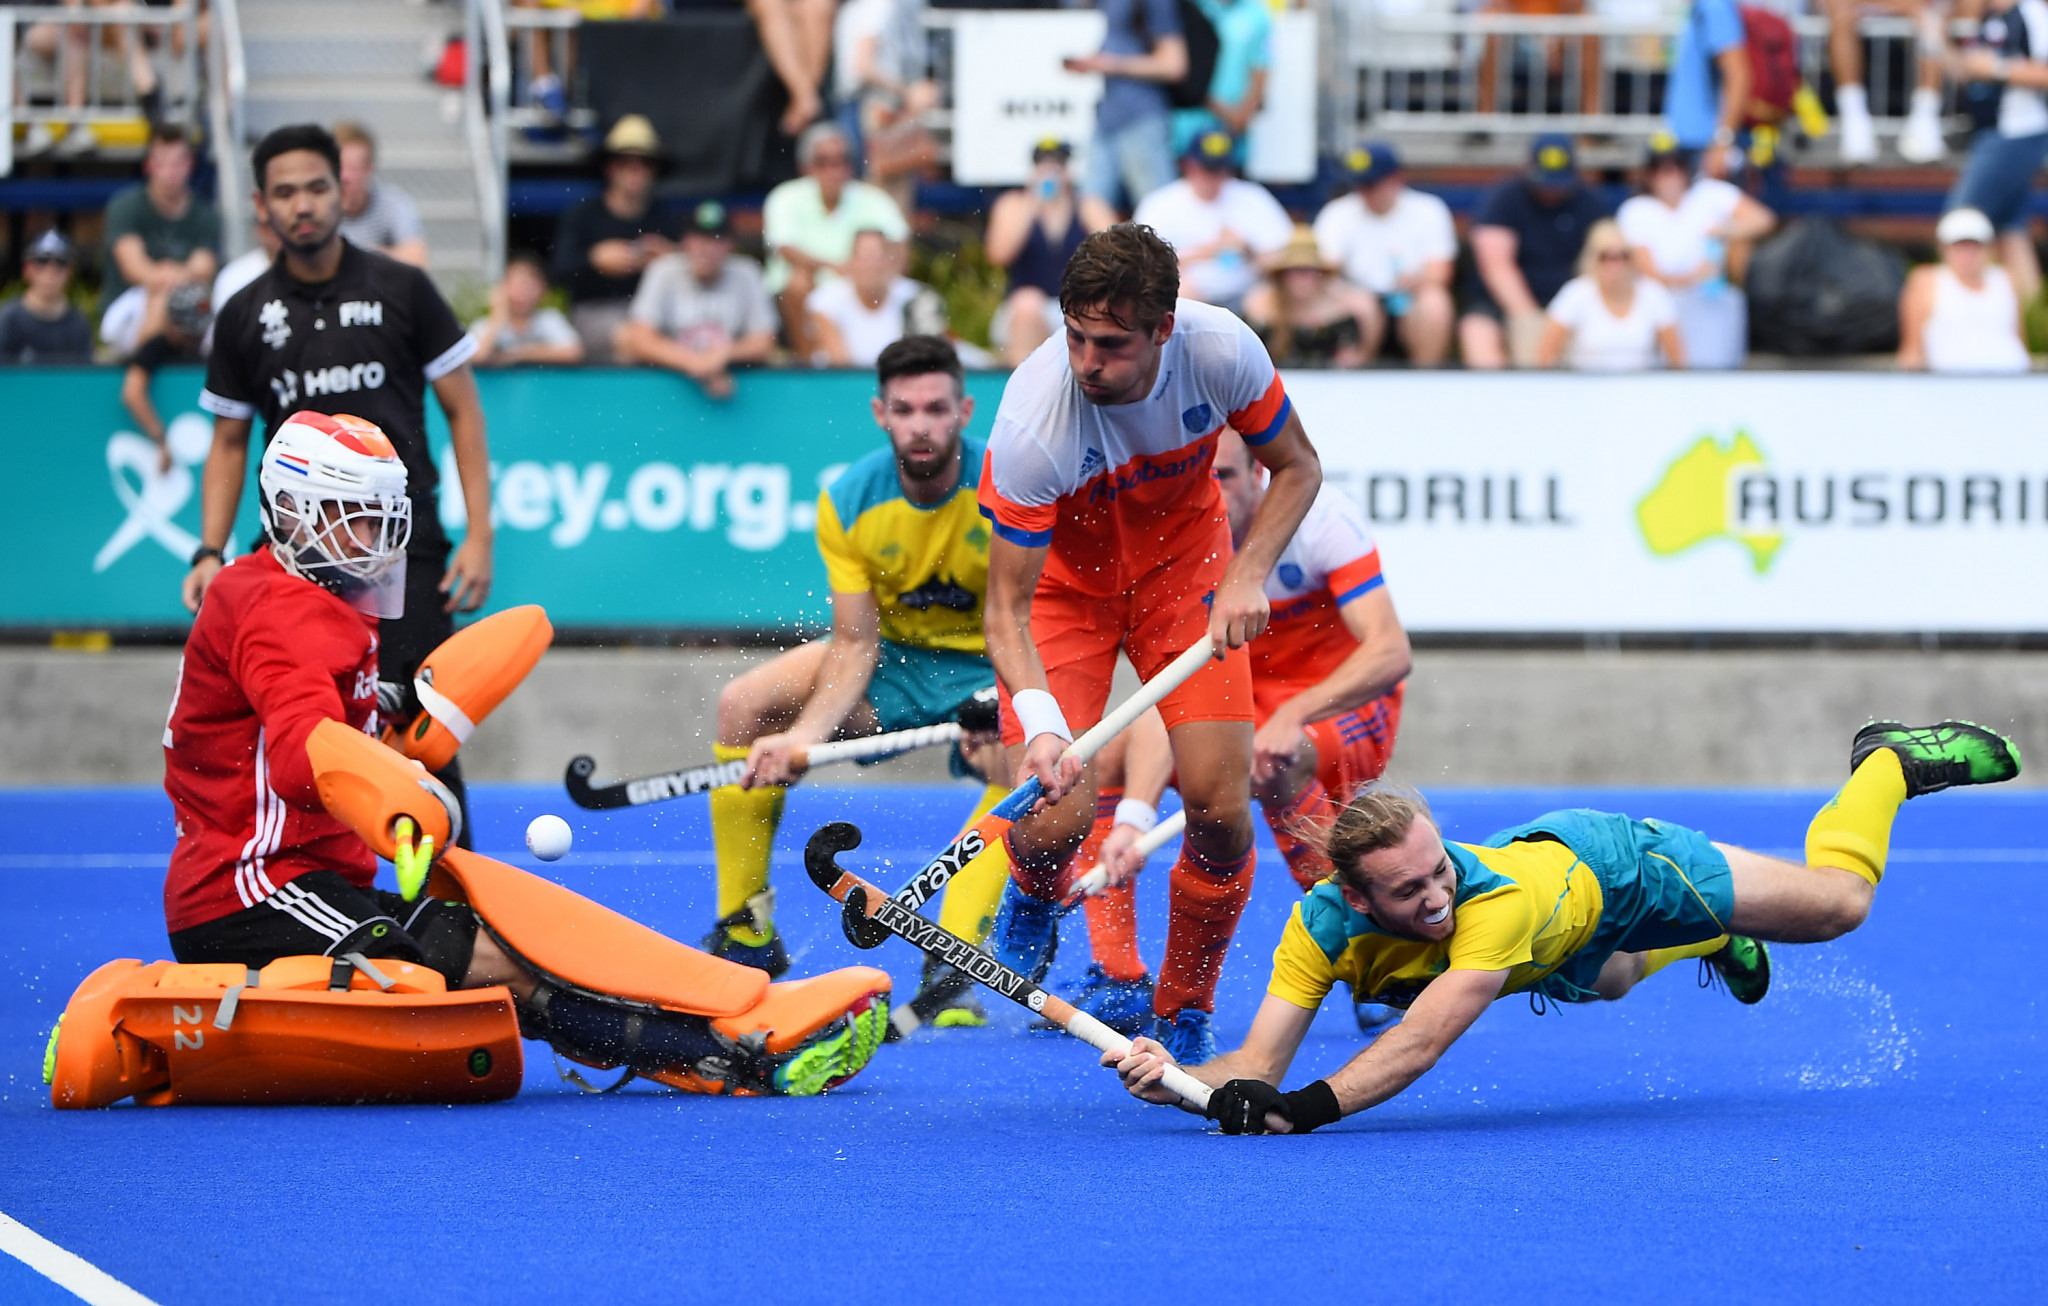 Netherlands claim dramatic win over hosts Australia in men's FIH Pro League